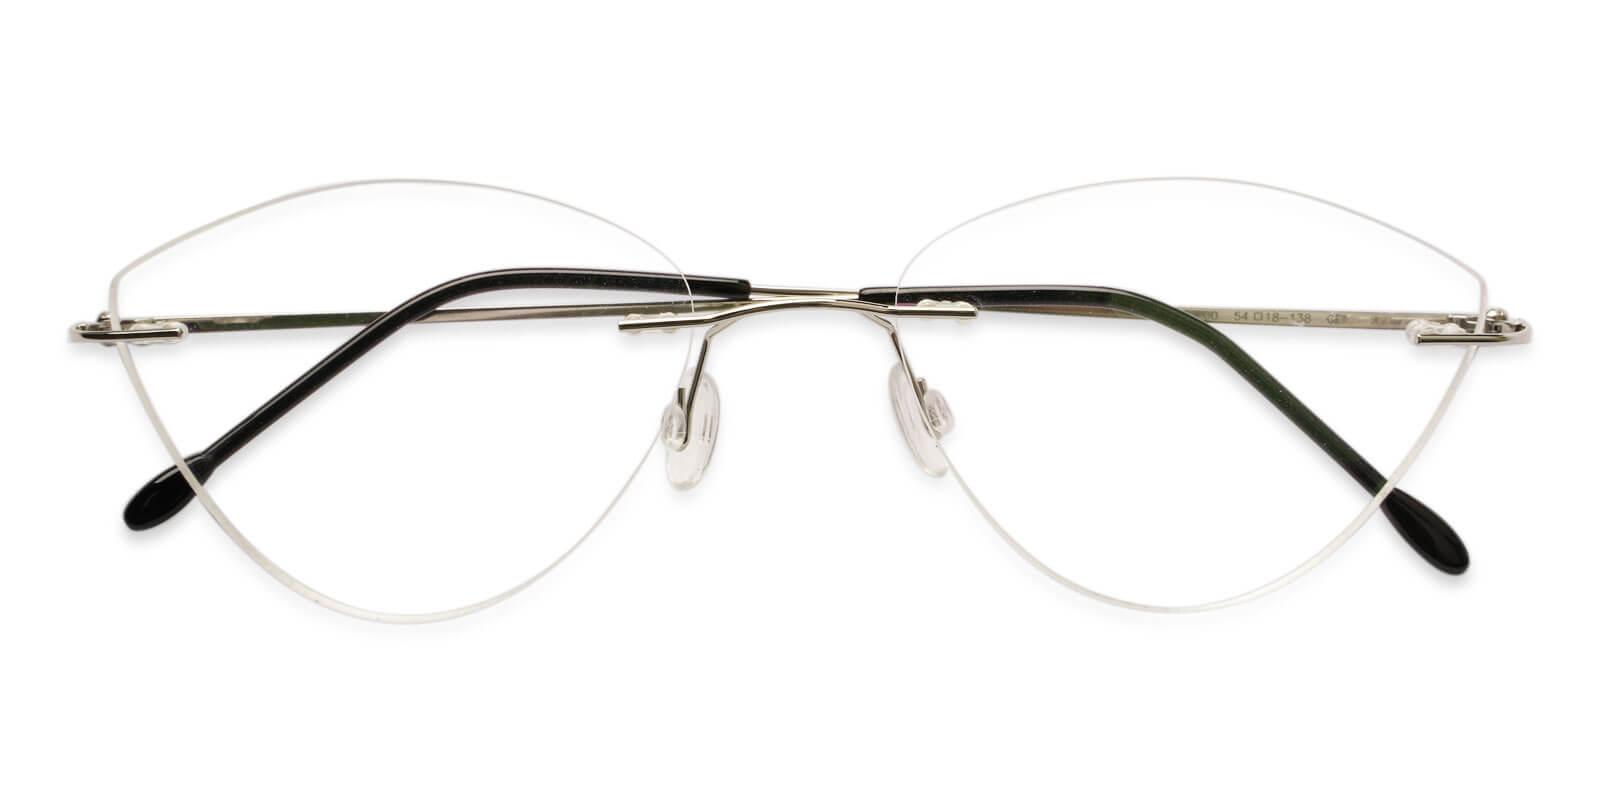 Congo Silver Metal Eyeglasses , NosePads Frames from ABBE Glasses